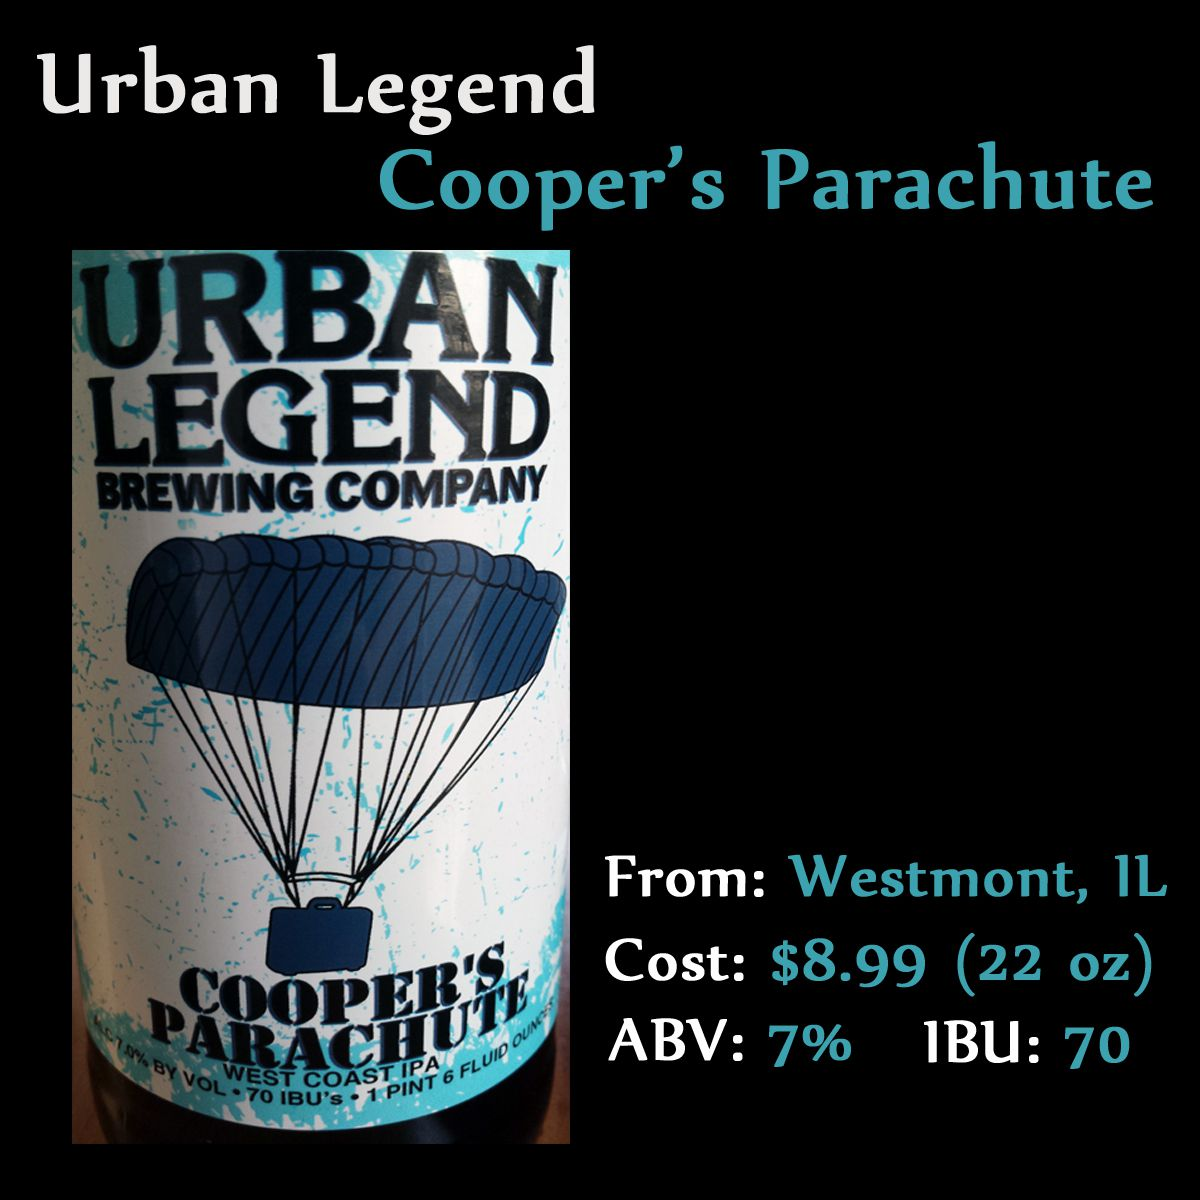 coopers parachute